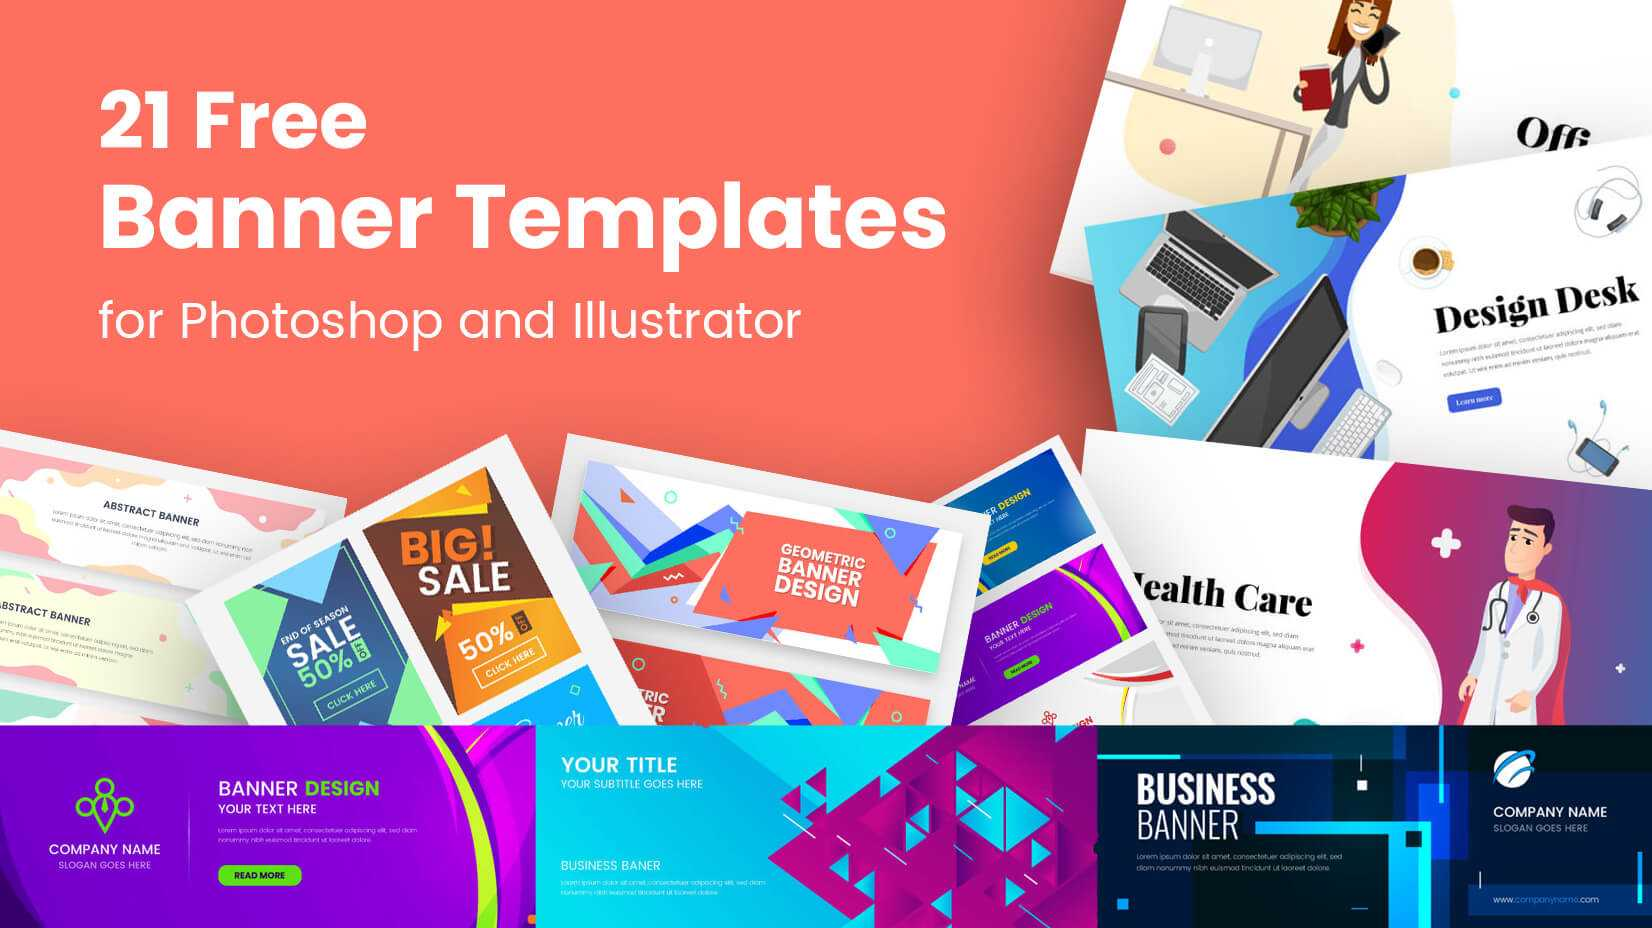 21 Free Banner Templates For Photoshop And Illustrator Within Website Banner Templates Free Download